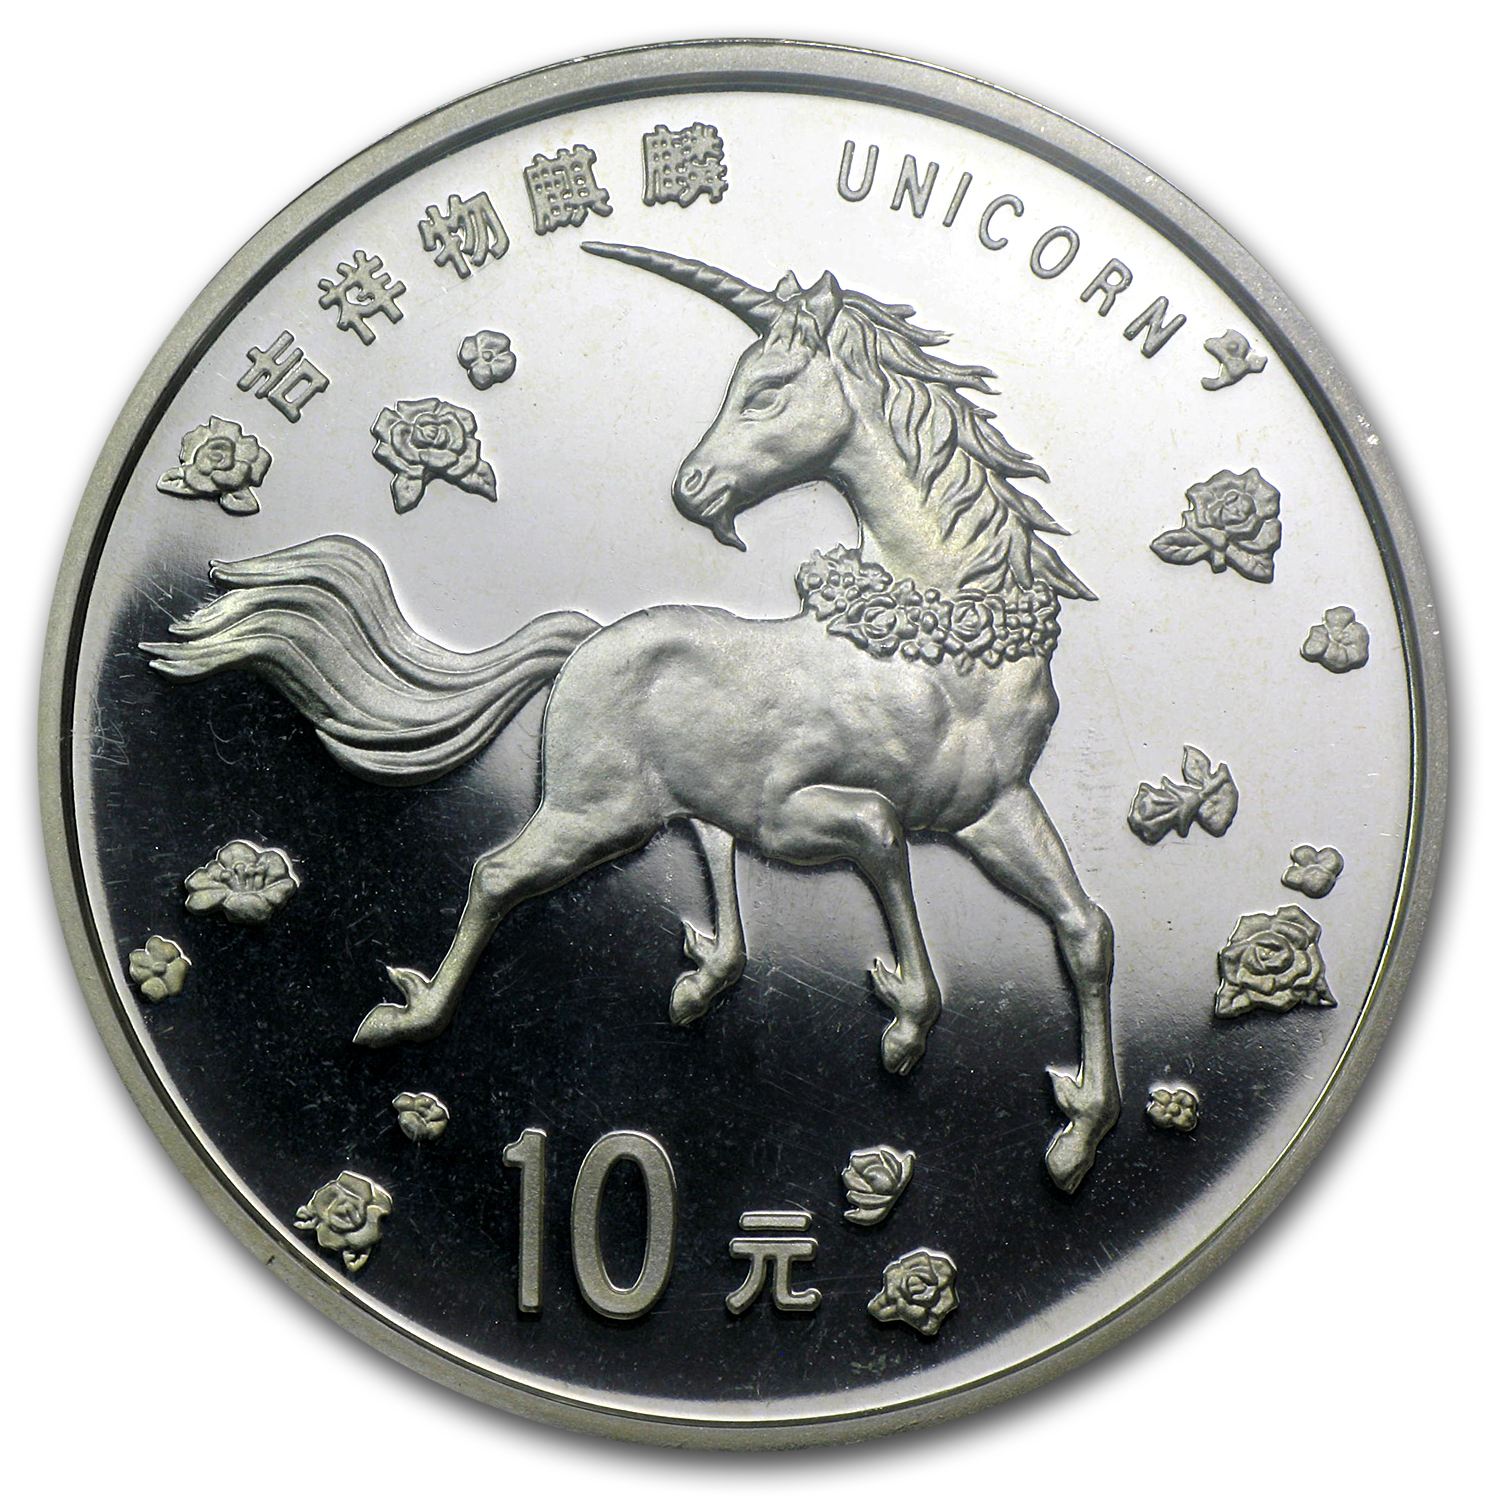 1997 China 1 oz Silver 10 Yuan Unicorn PL-68 PCGS